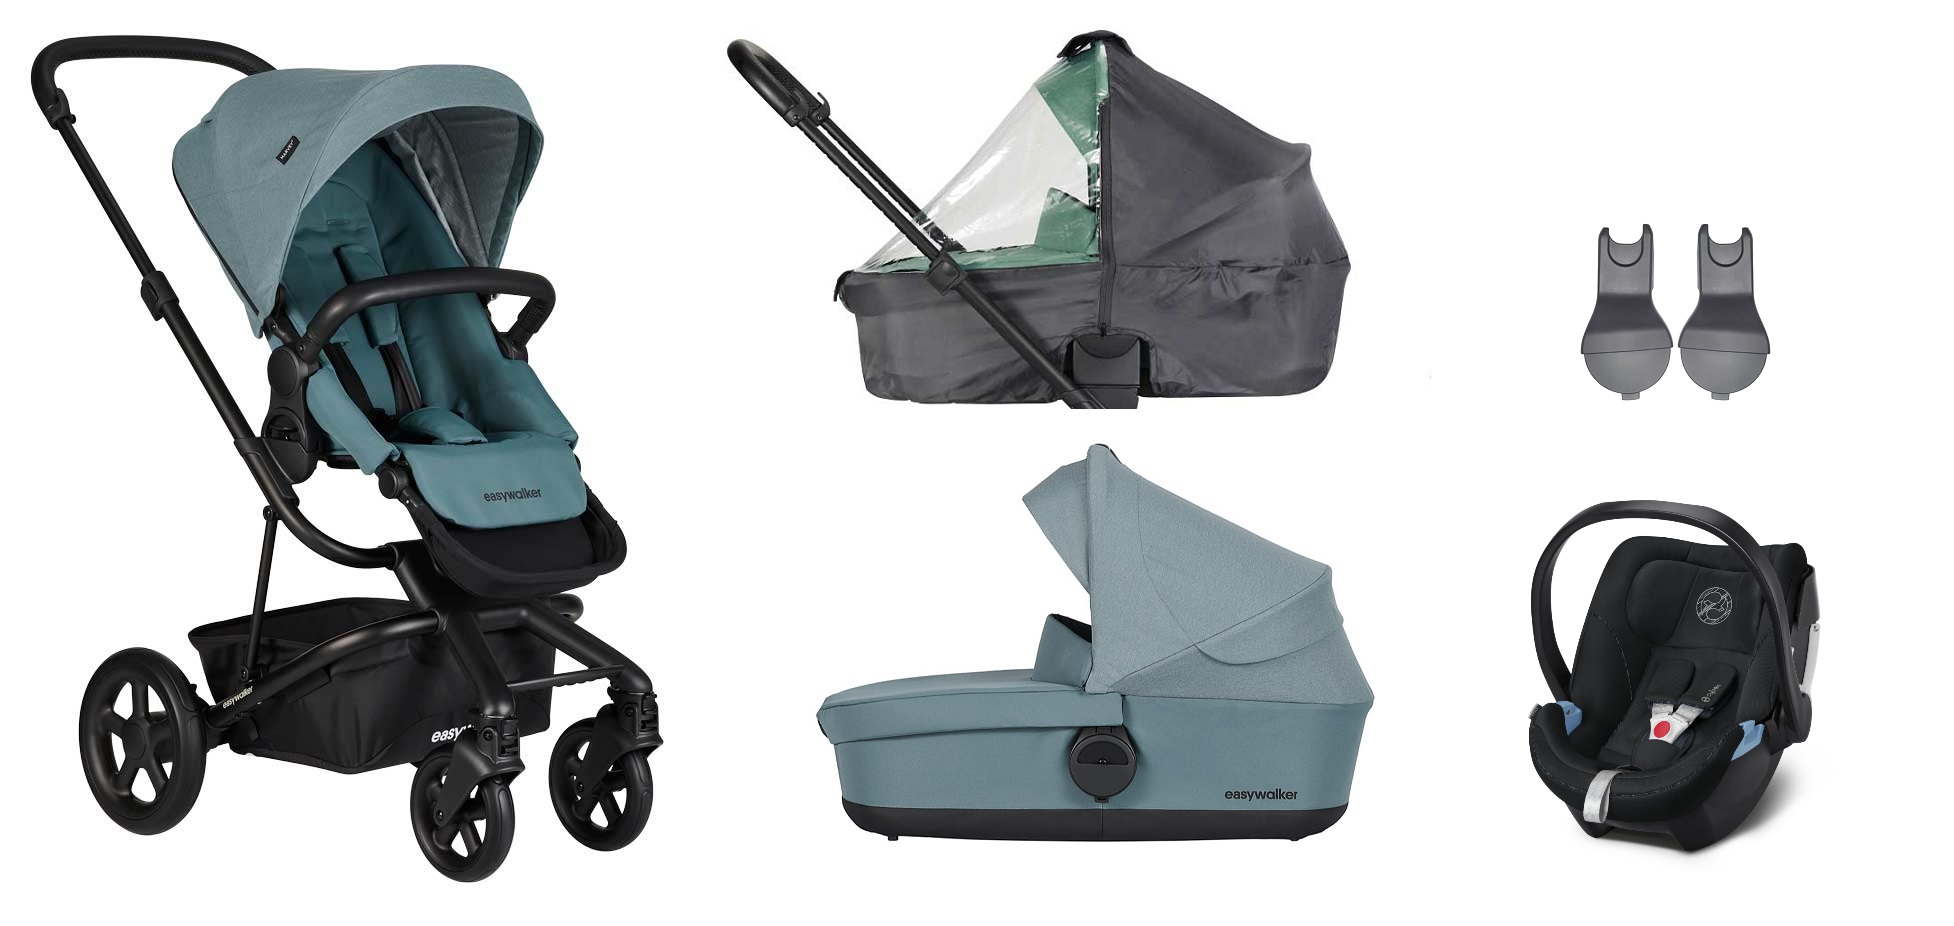 Babyschale Cybex Flugzeug Easywalker Harvey 2 Kinderwagen 3 In 1 Set Mit Cybex Babyschale